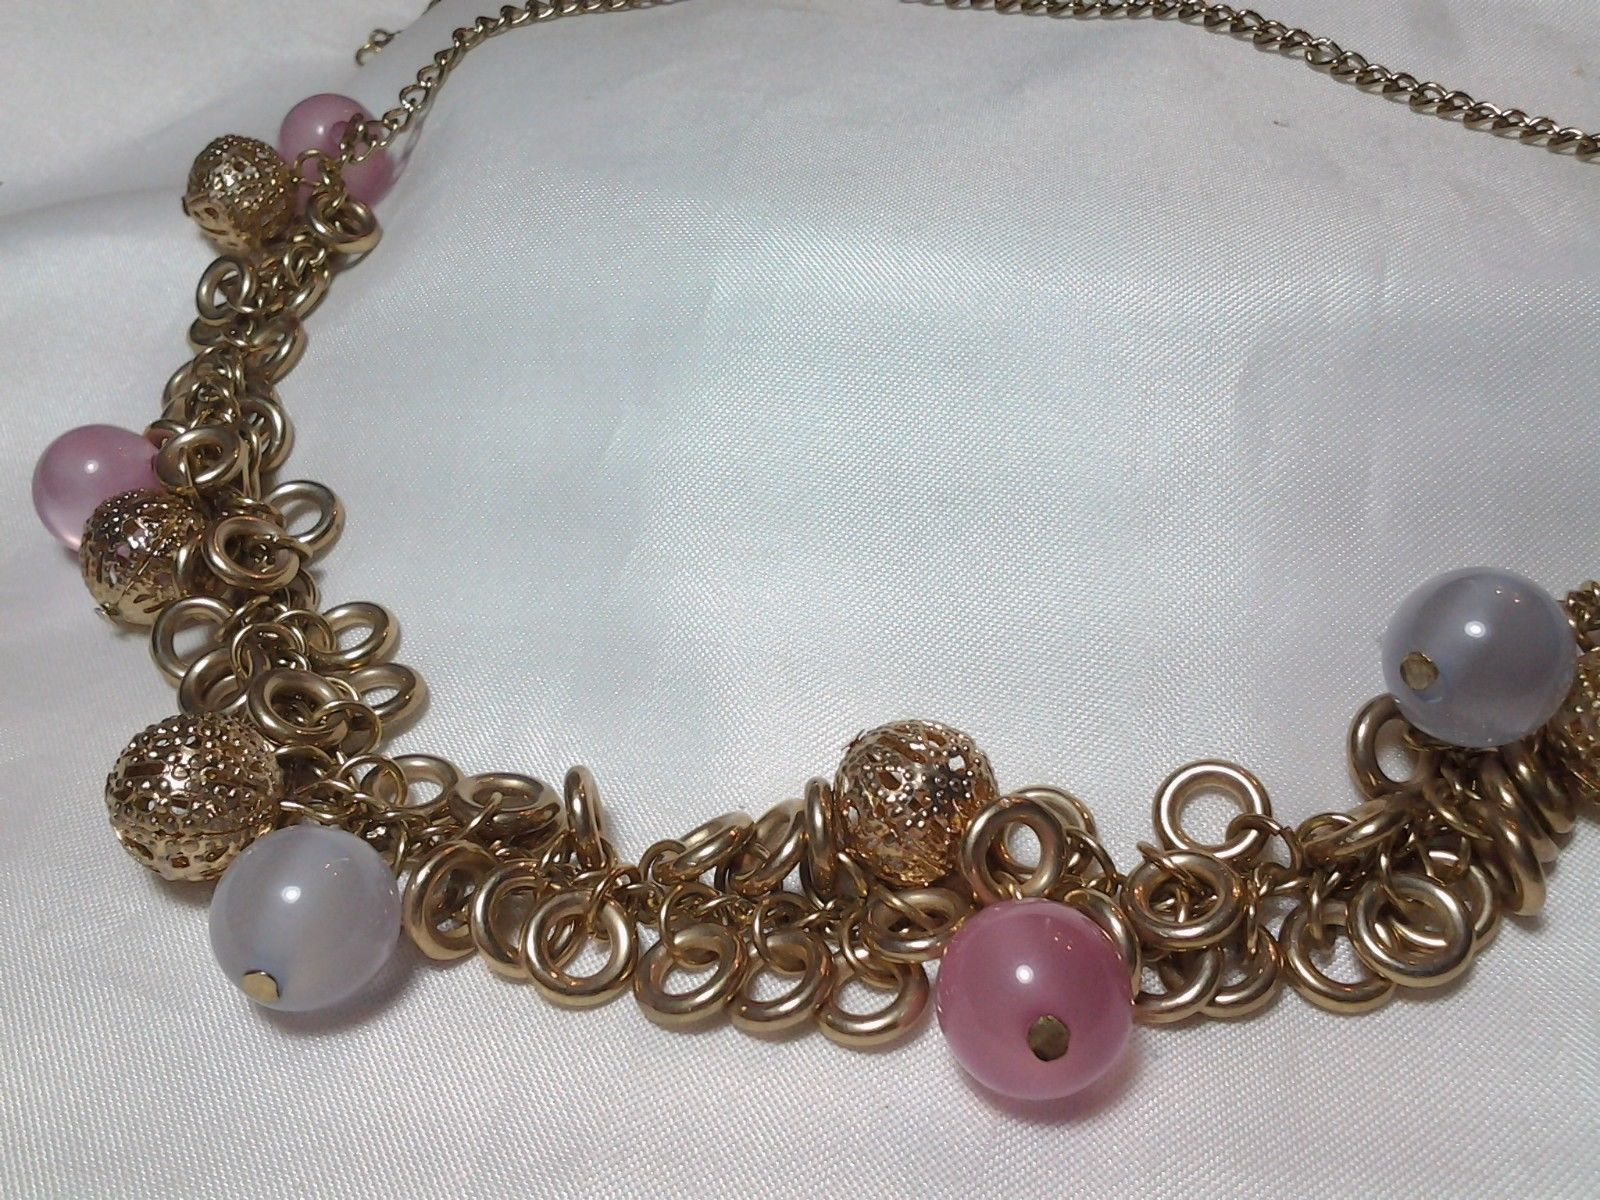 pink moonstone jewelry vintage - photo #26